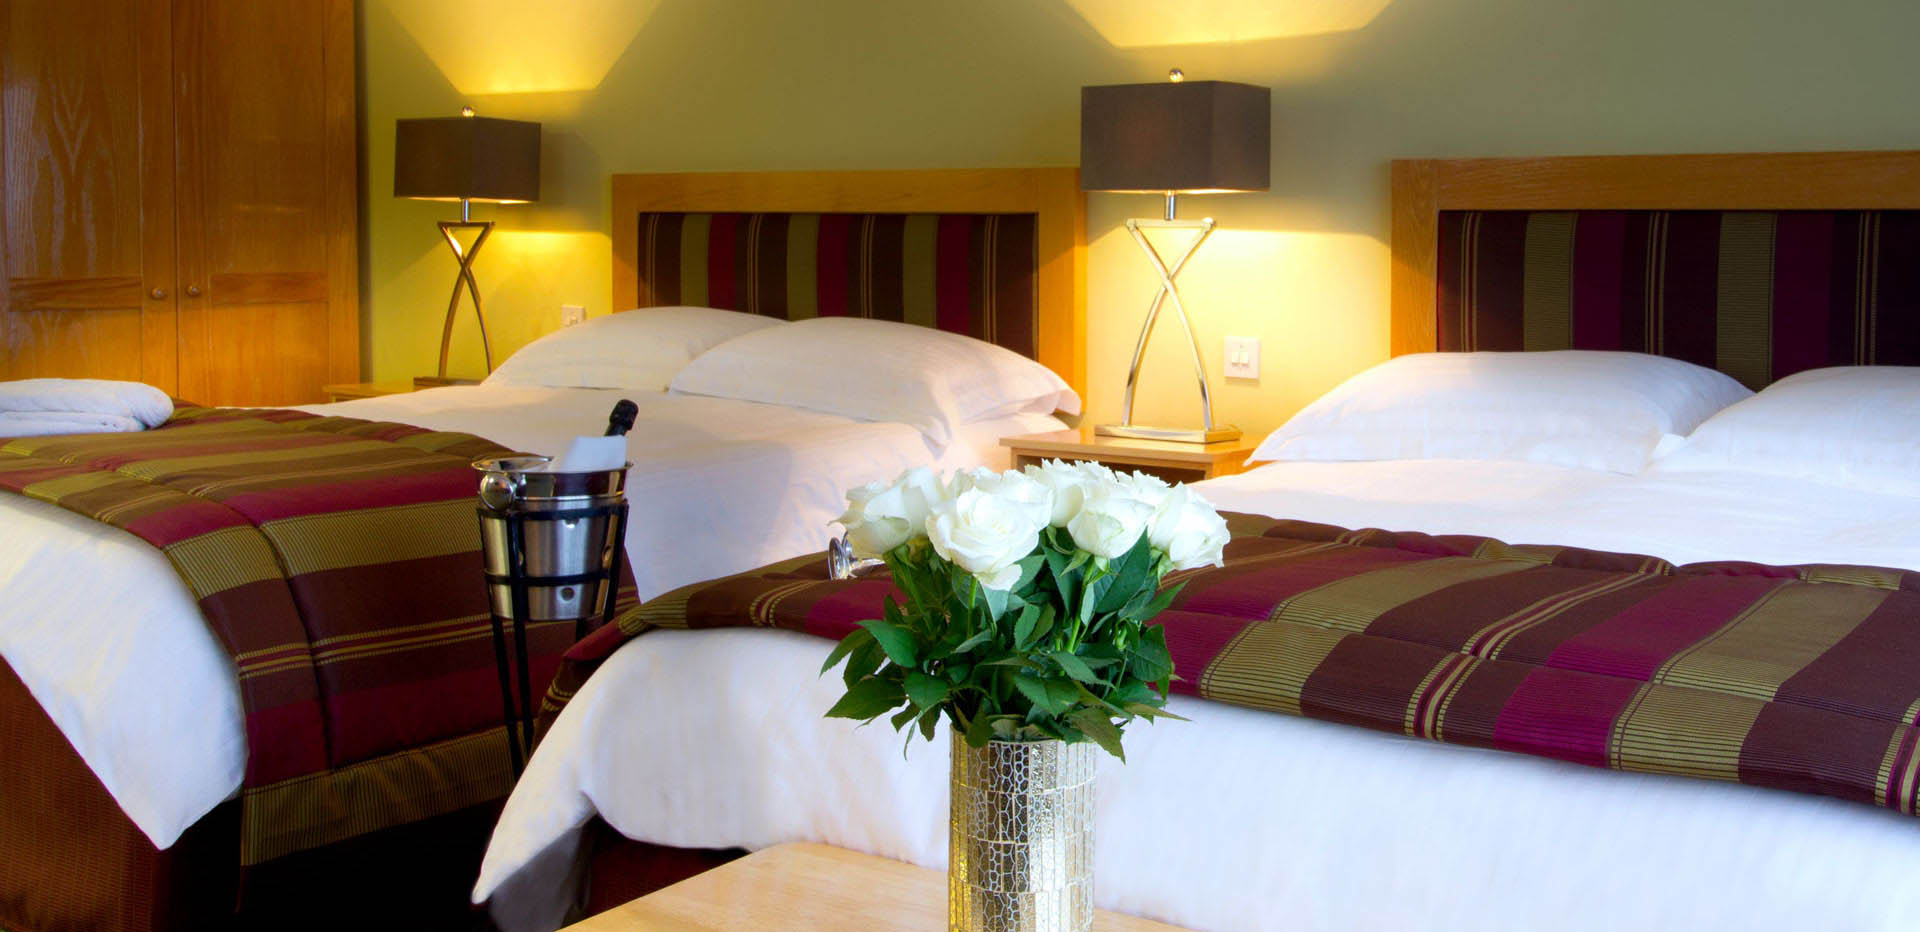 Each room with a stunning view of Sheephaven Bay